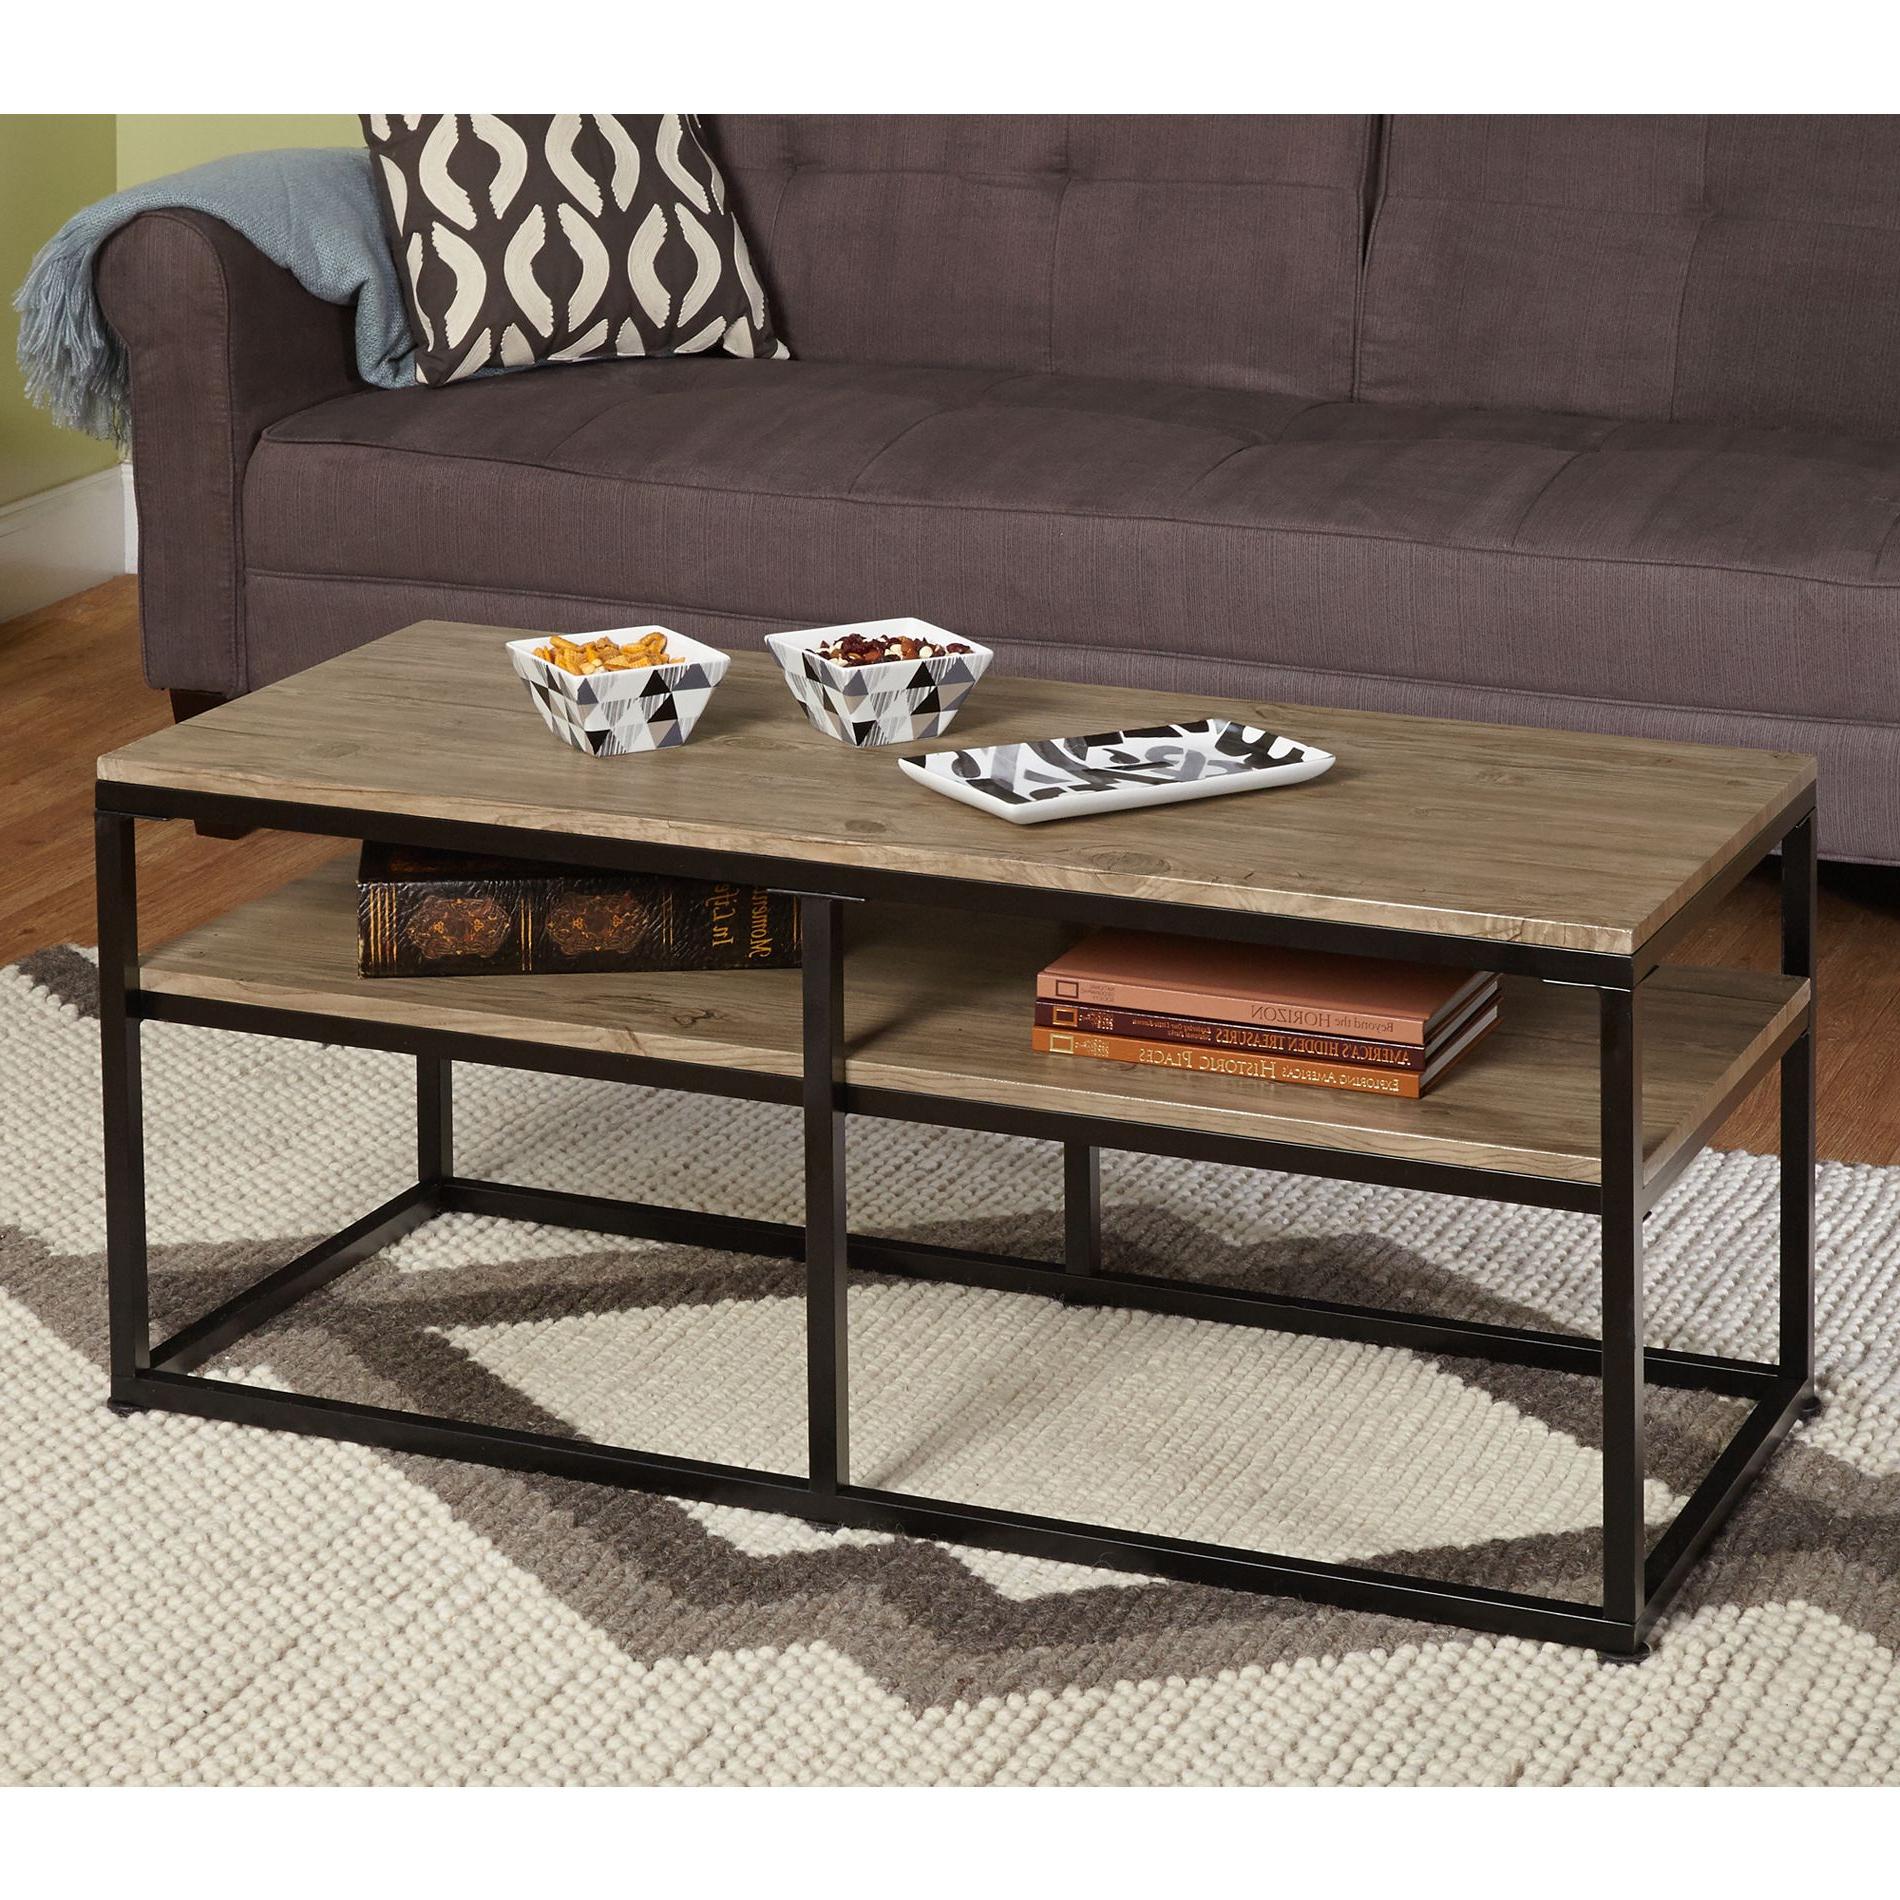 Best And Newest Strick & Bolton Florence Chrome Coffee Tables Regarding Simple Living Piazza Coffee Table – Overstock™ Shopping (View 14 of 20)